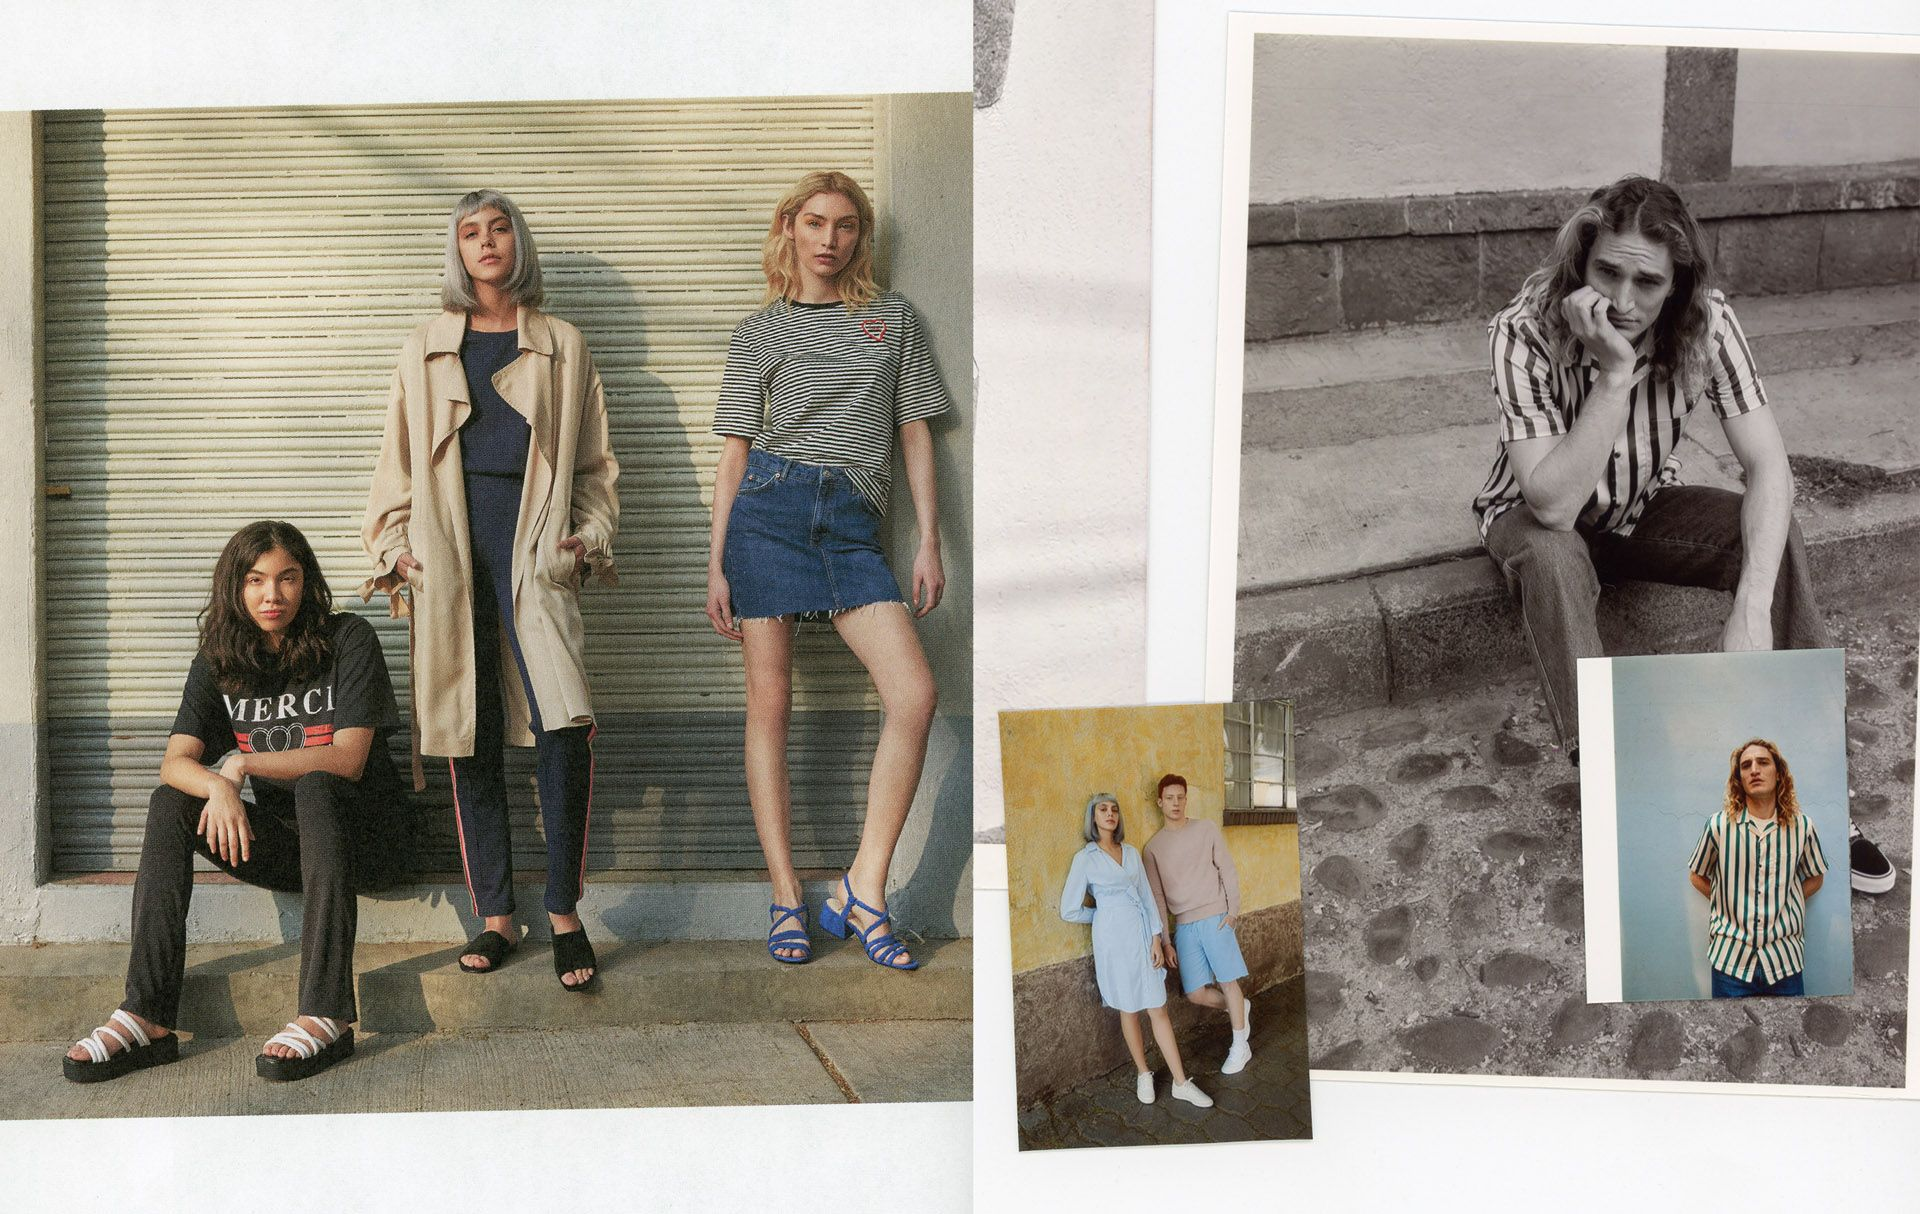 polaroid of models by Oumayma B Tanfous for Little Burgundy in Mexico